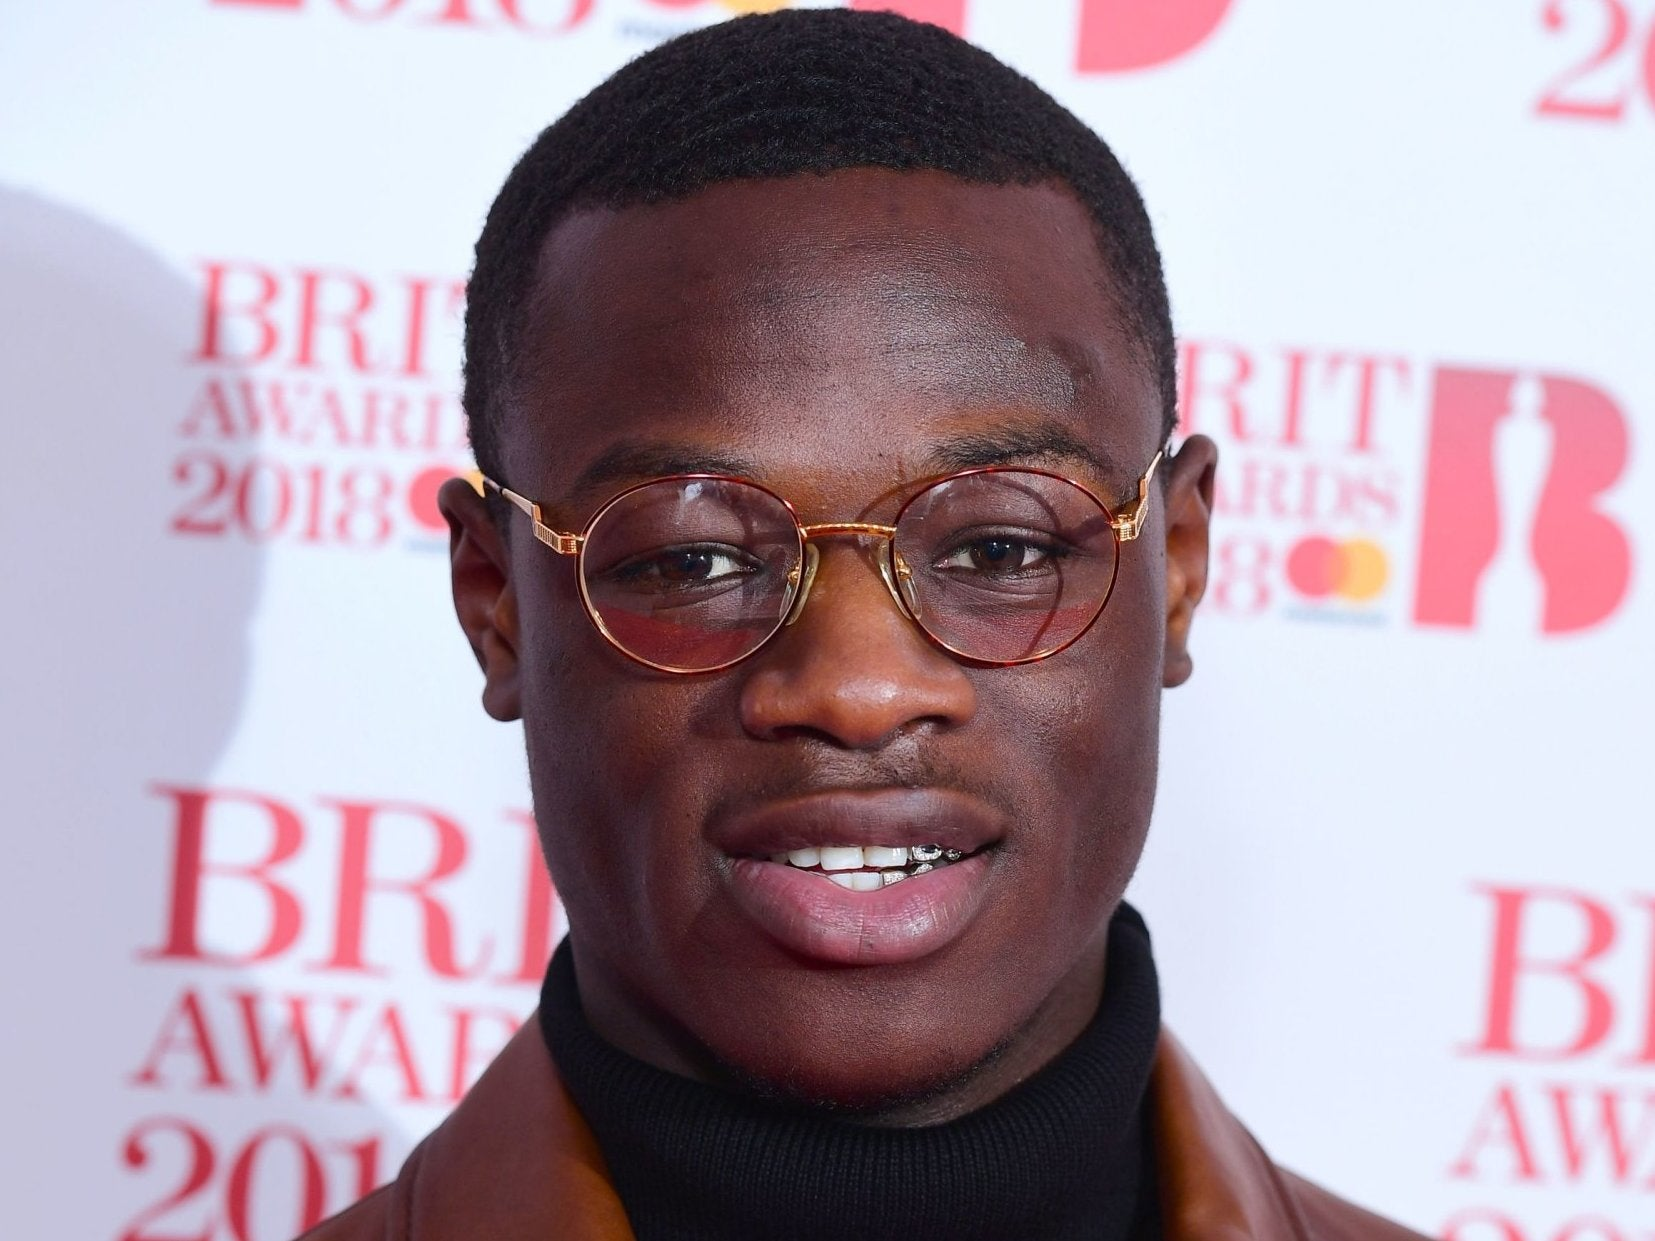 J Hus Accuses Europeans Of Forcing Lgbt Onto Africa And Weaponising Homosexuality The Independent The Independent